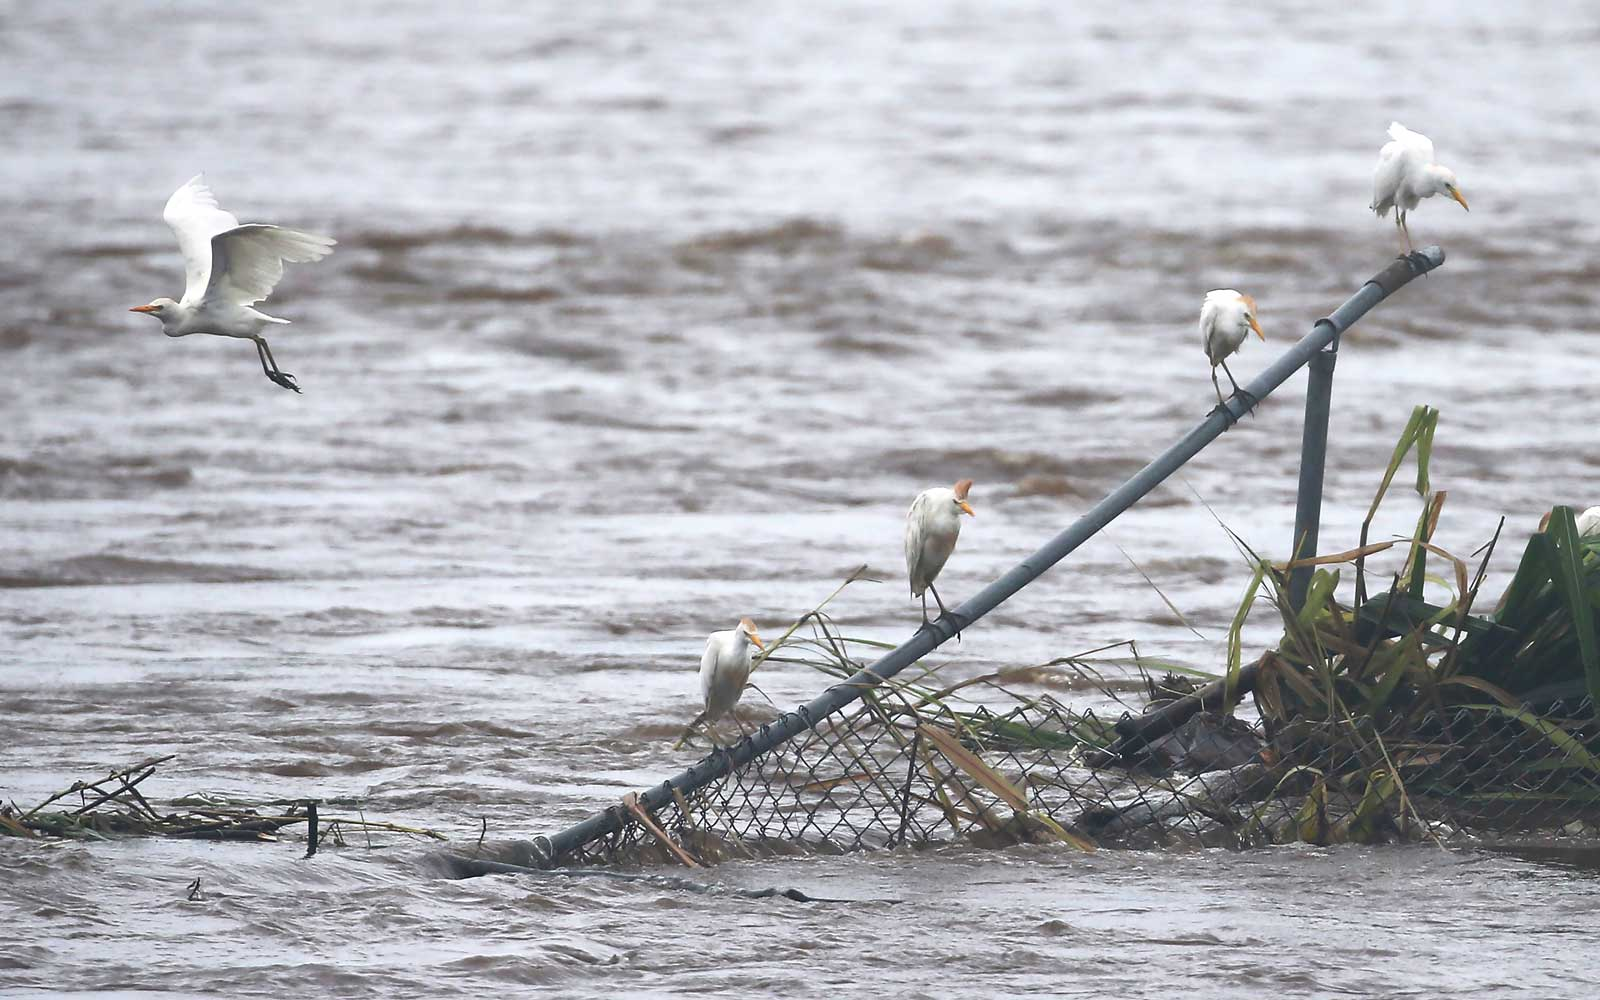 A bird flies as others perch above floodwaters from Hurricane Lane rainfall on the Big Island on August 23, 2018 in Hilo, Hawaii.